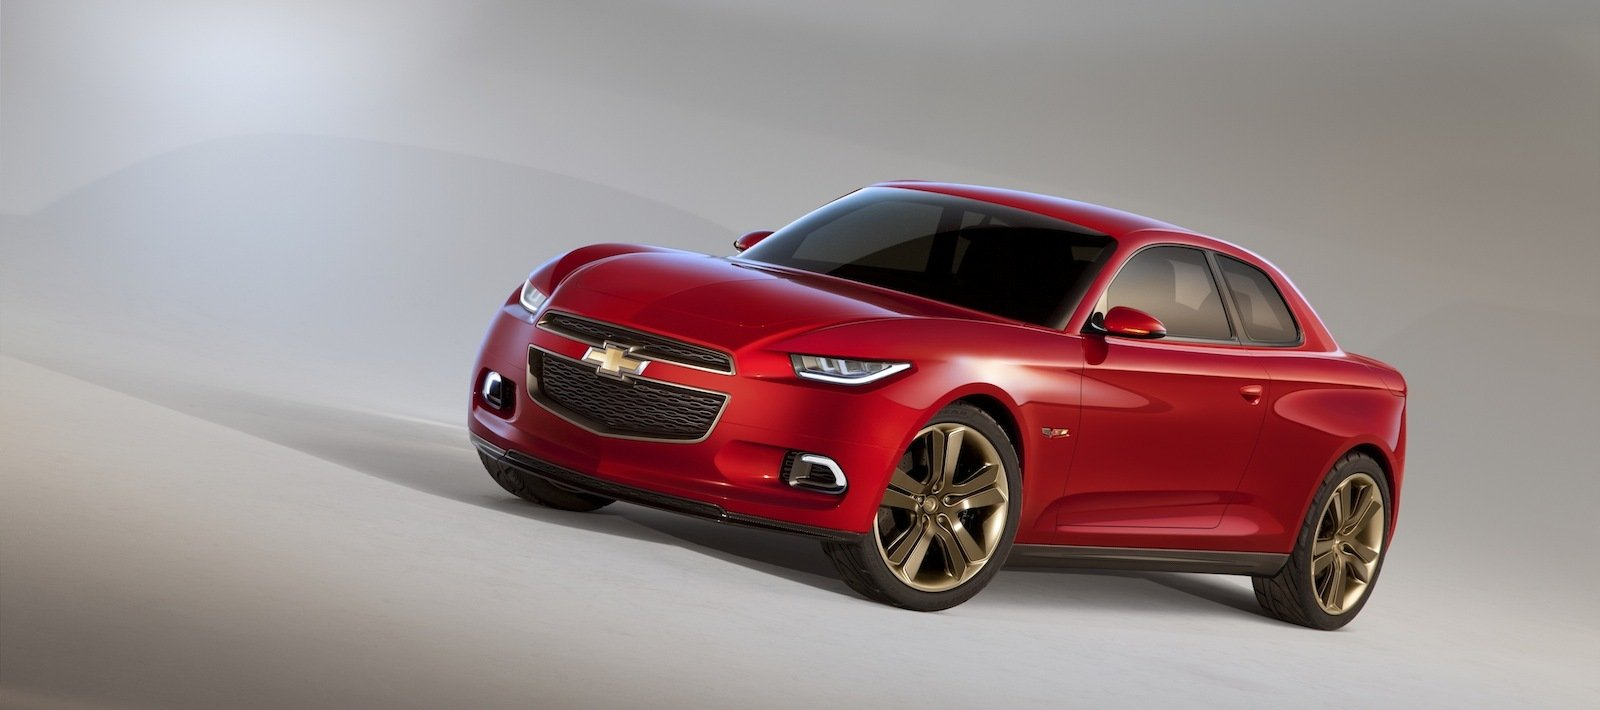 http://pictures.topspeed.com/IMG/crop/201201/chevrolet-code-130r--3_1600x0w.jpg